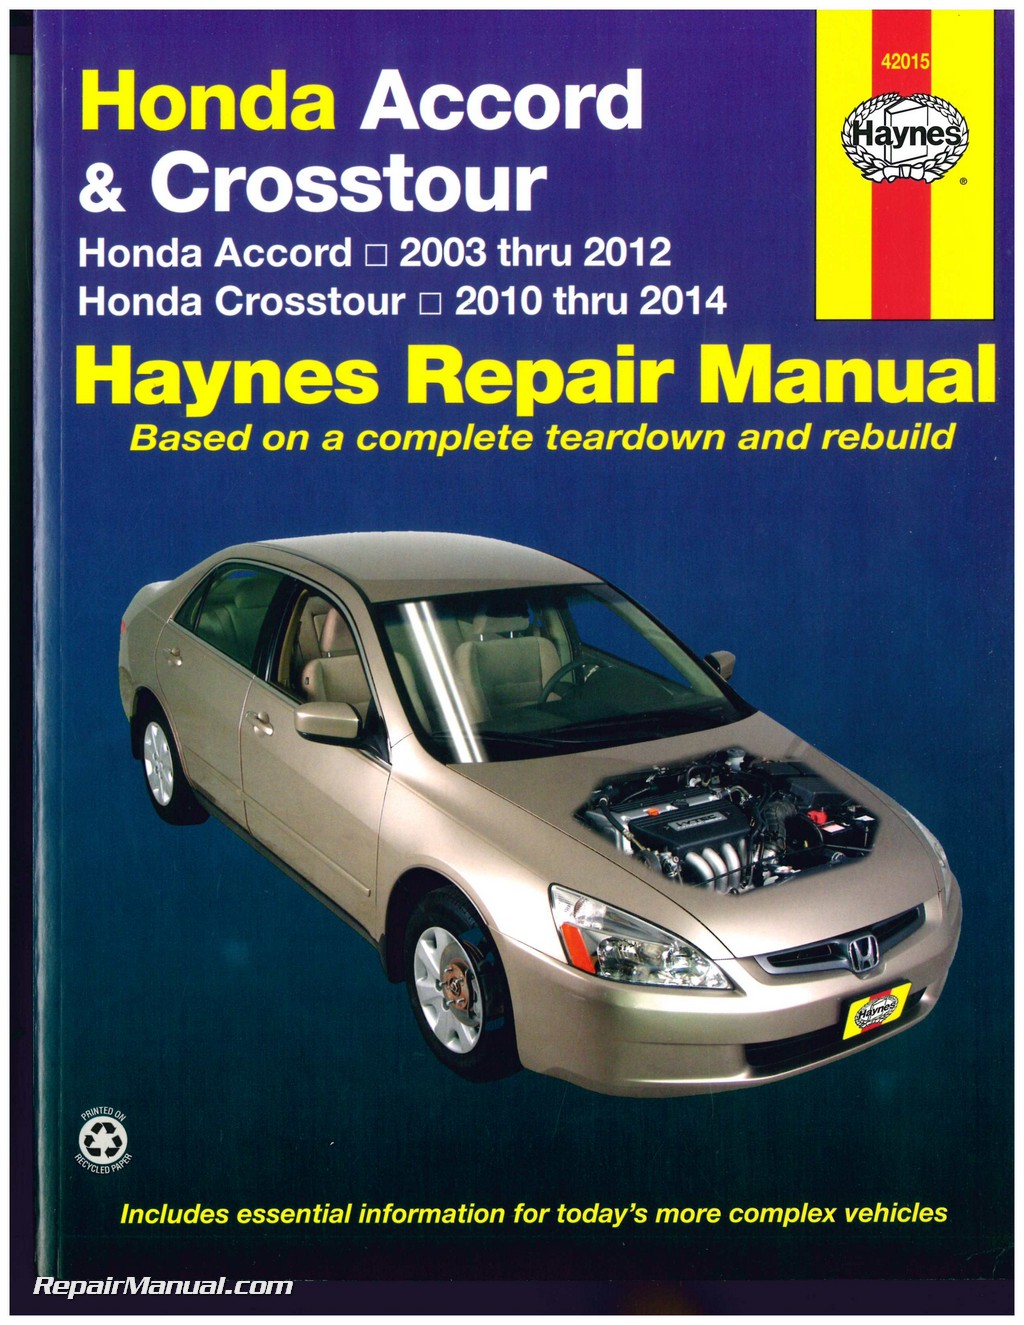 Honda Accord 2003-2012 Crosstour 2010-2014 Haynes ...